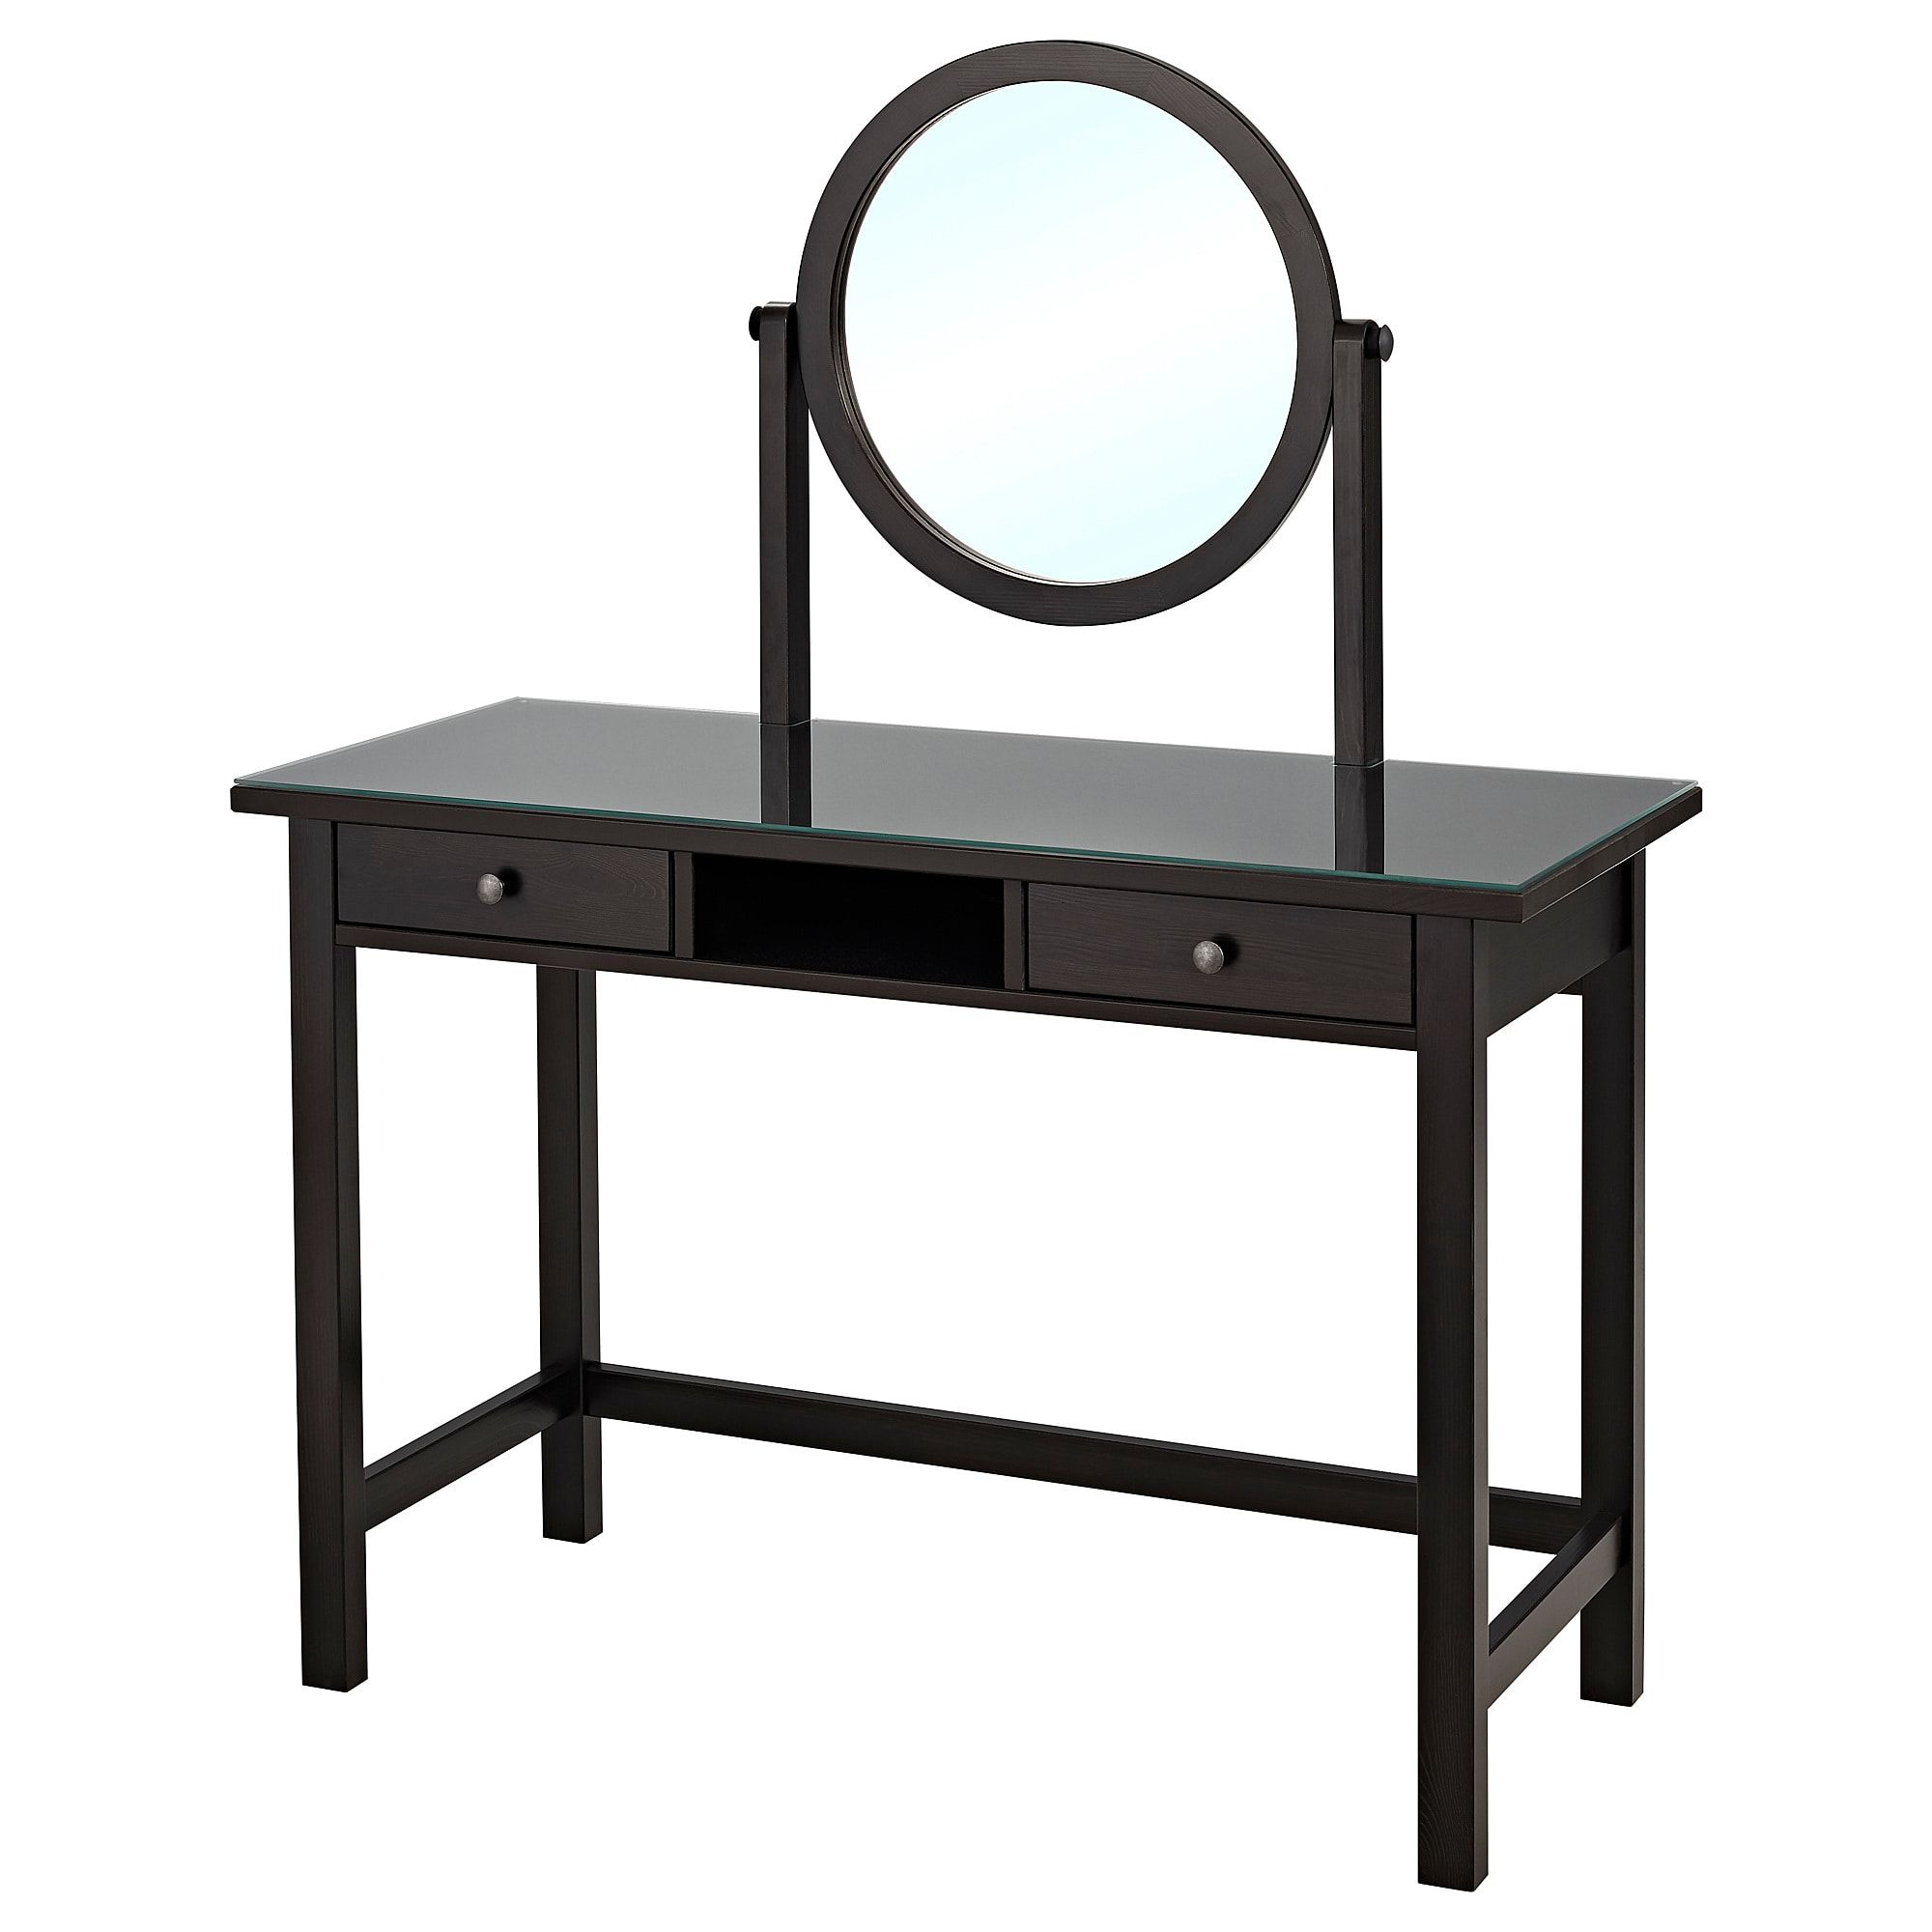 Hemnes Dressing Table With Mirror Black Brown 43 1 4x17 3 4 Ikea Dressing Table Mirror Hemnes Brimnes Dressing Table